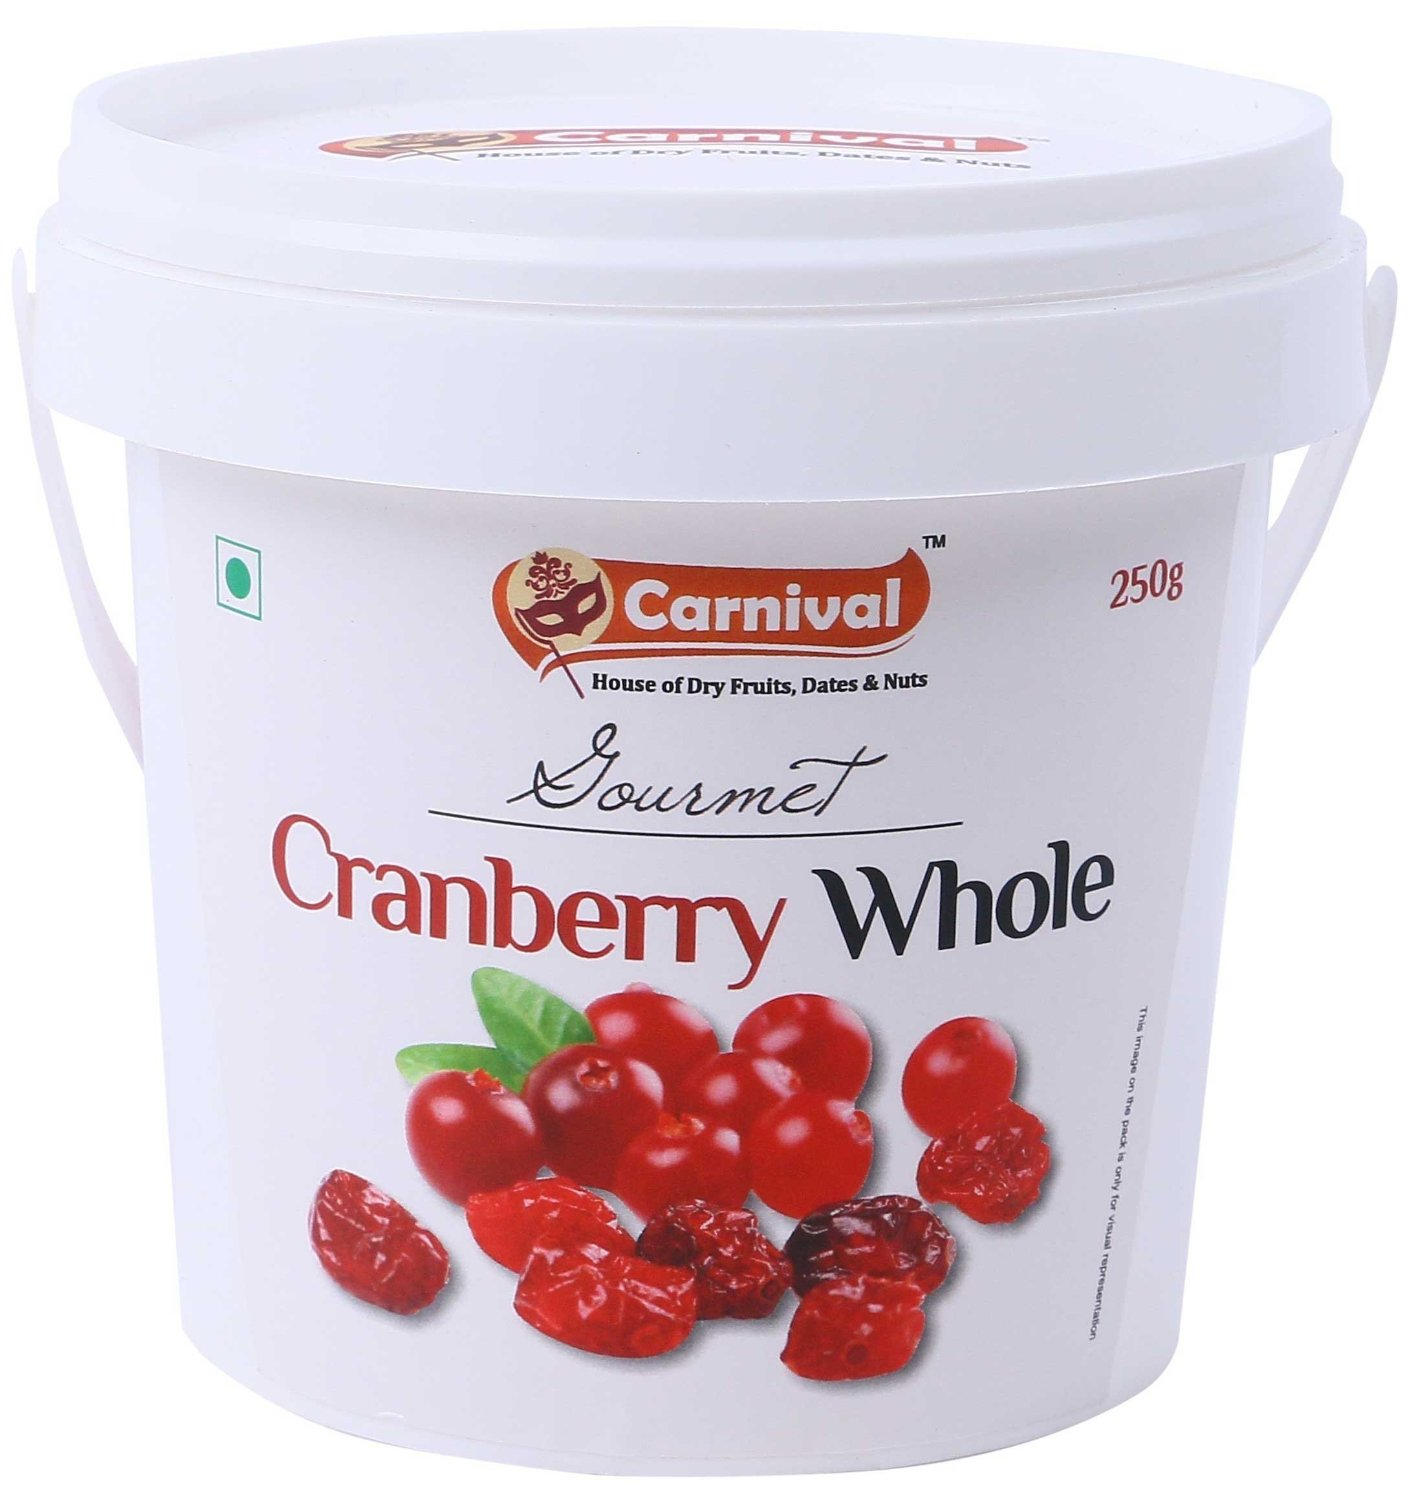 Carnival Cranberry Whole Image